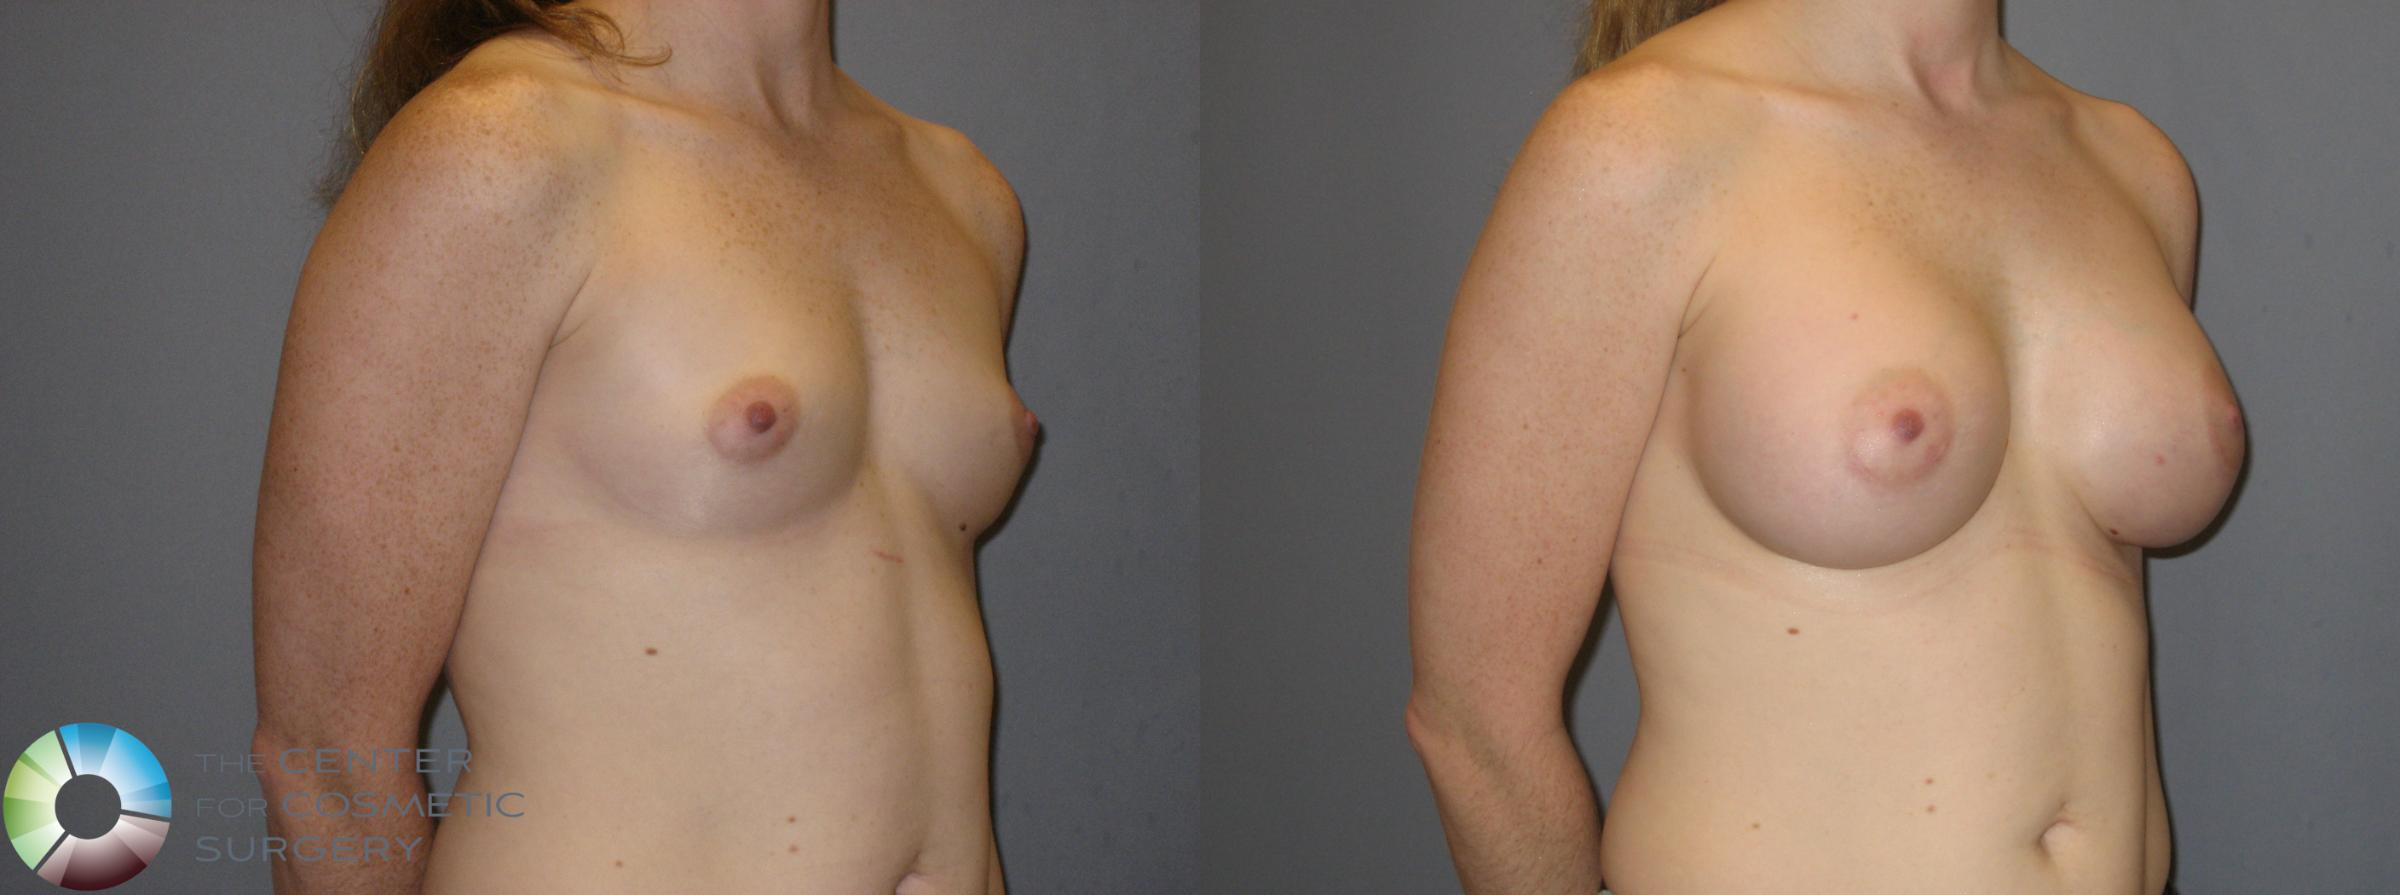 Breast Augmentation Case 121 Before & After View #2 | Golden, CO | The Center for Cosmetic Surgery